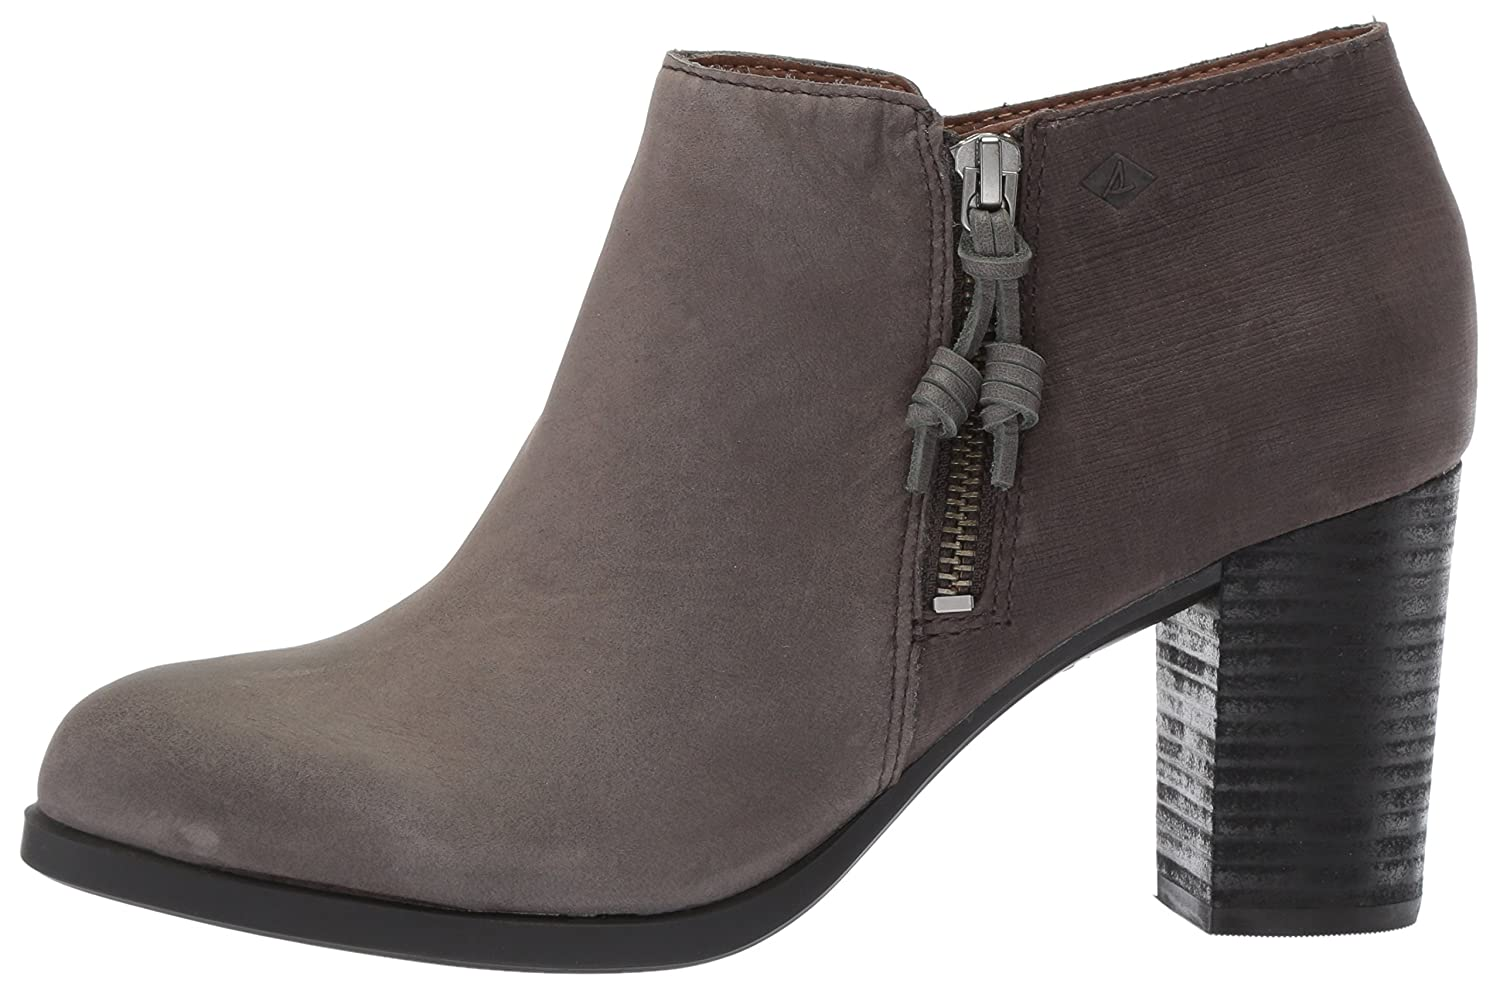 Sperry Top-Sider Women's Dasher Lille Ankle Bootie B01N9JP2LC 10 B(M) US|Dark Grey